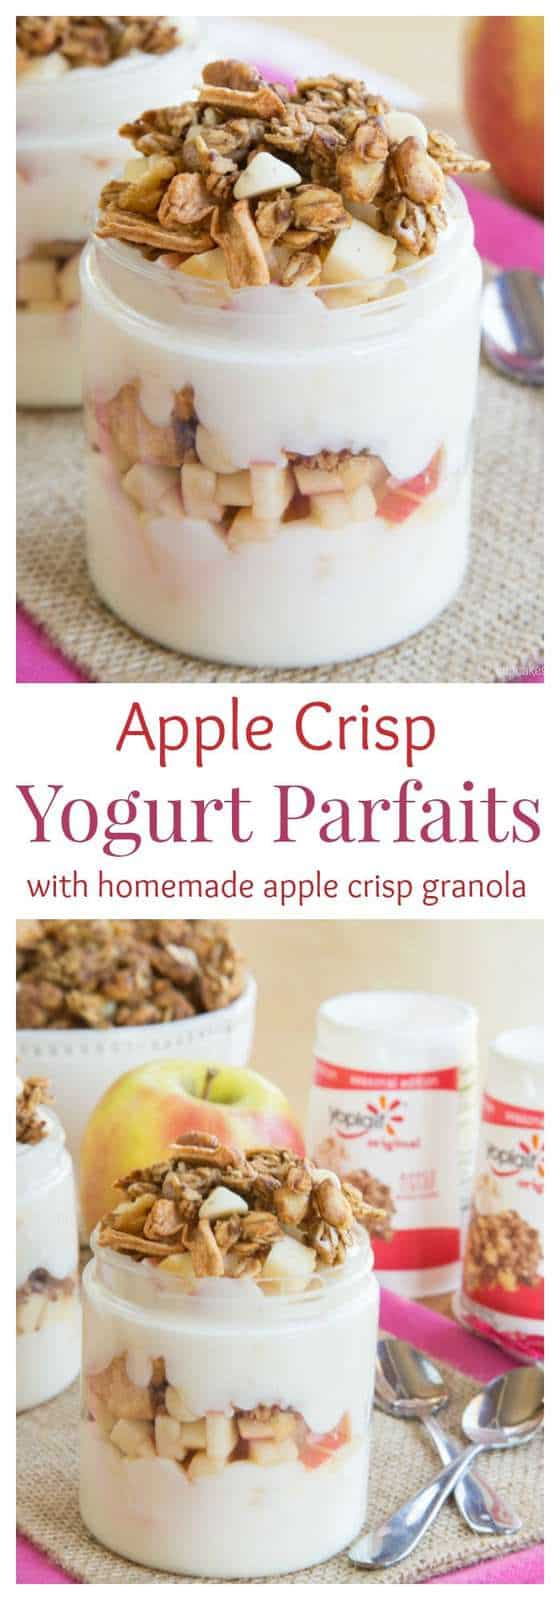 Apple Crisp Yogurt Parfaits with Homemade Apple Crisp Granola - a wholesome breakfast, snack, or dessert recipe inspired by a favorite fall sweet treat. Sponsored by General Mills® #AD #SnackandSmile | cupcakesandkalechips.com | gluten free